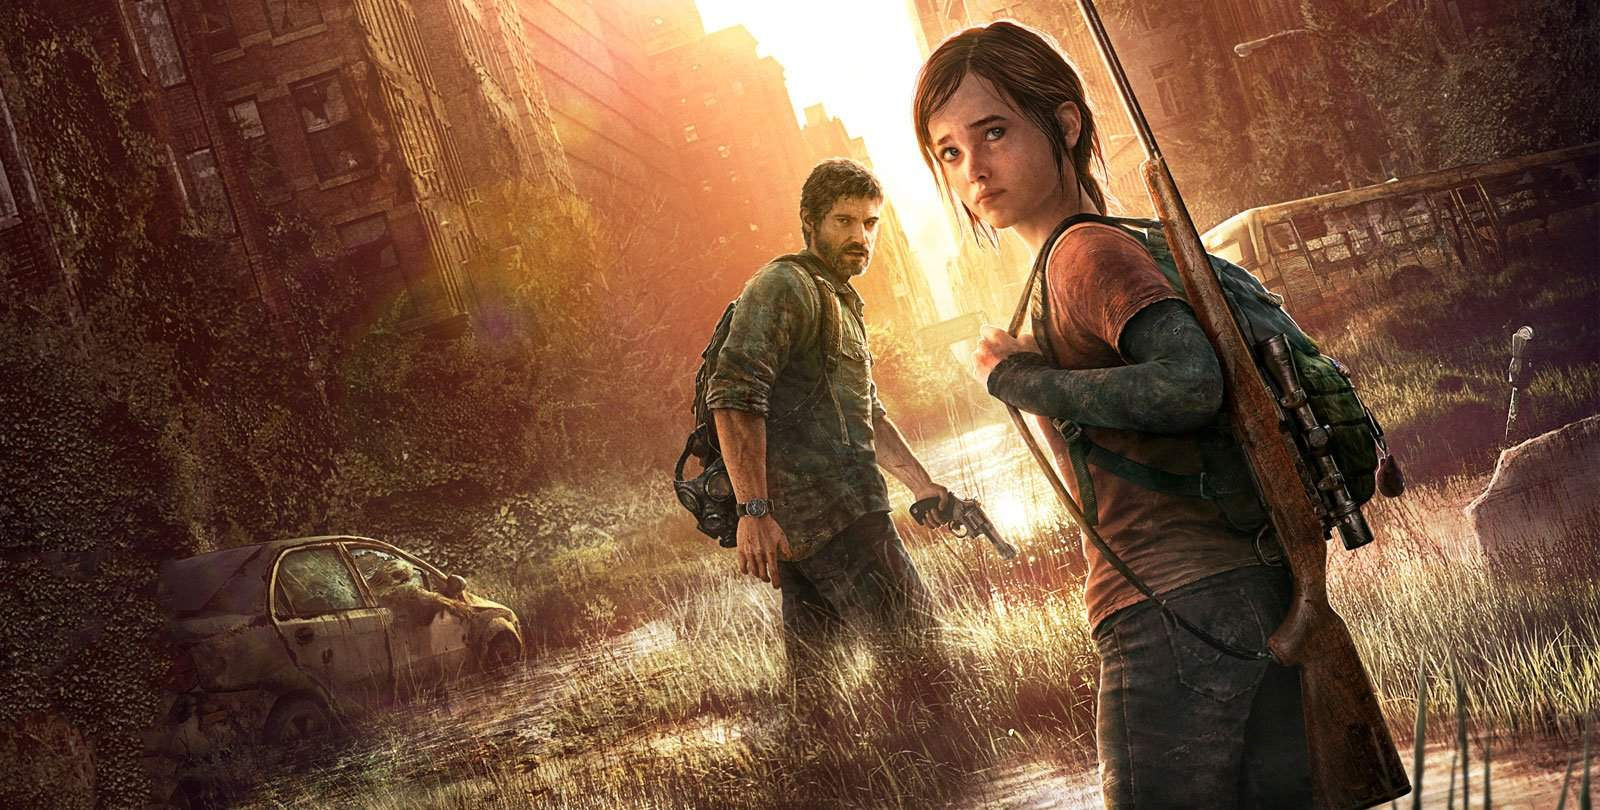 The World of The Last of Us: Envisioning a Post Apocalyptic Future